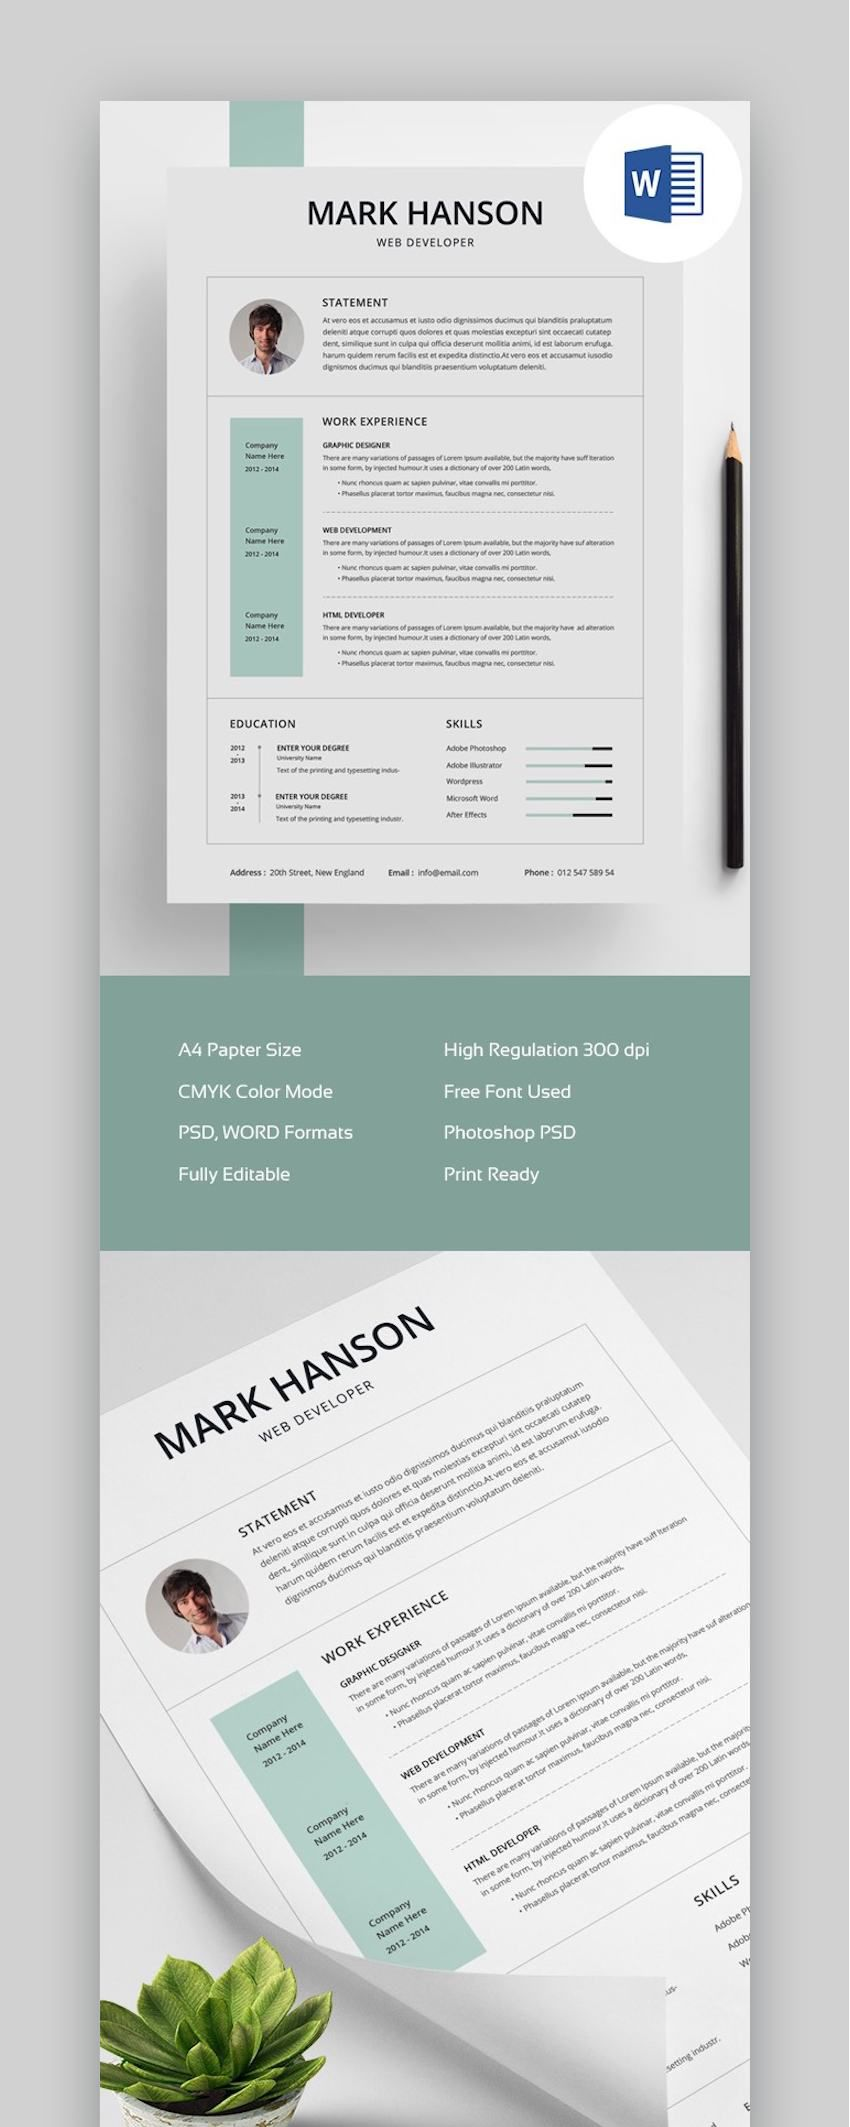 003 Phenomenal Photoshop Resume Template Free Download Concept  Creative Cv PsdFull